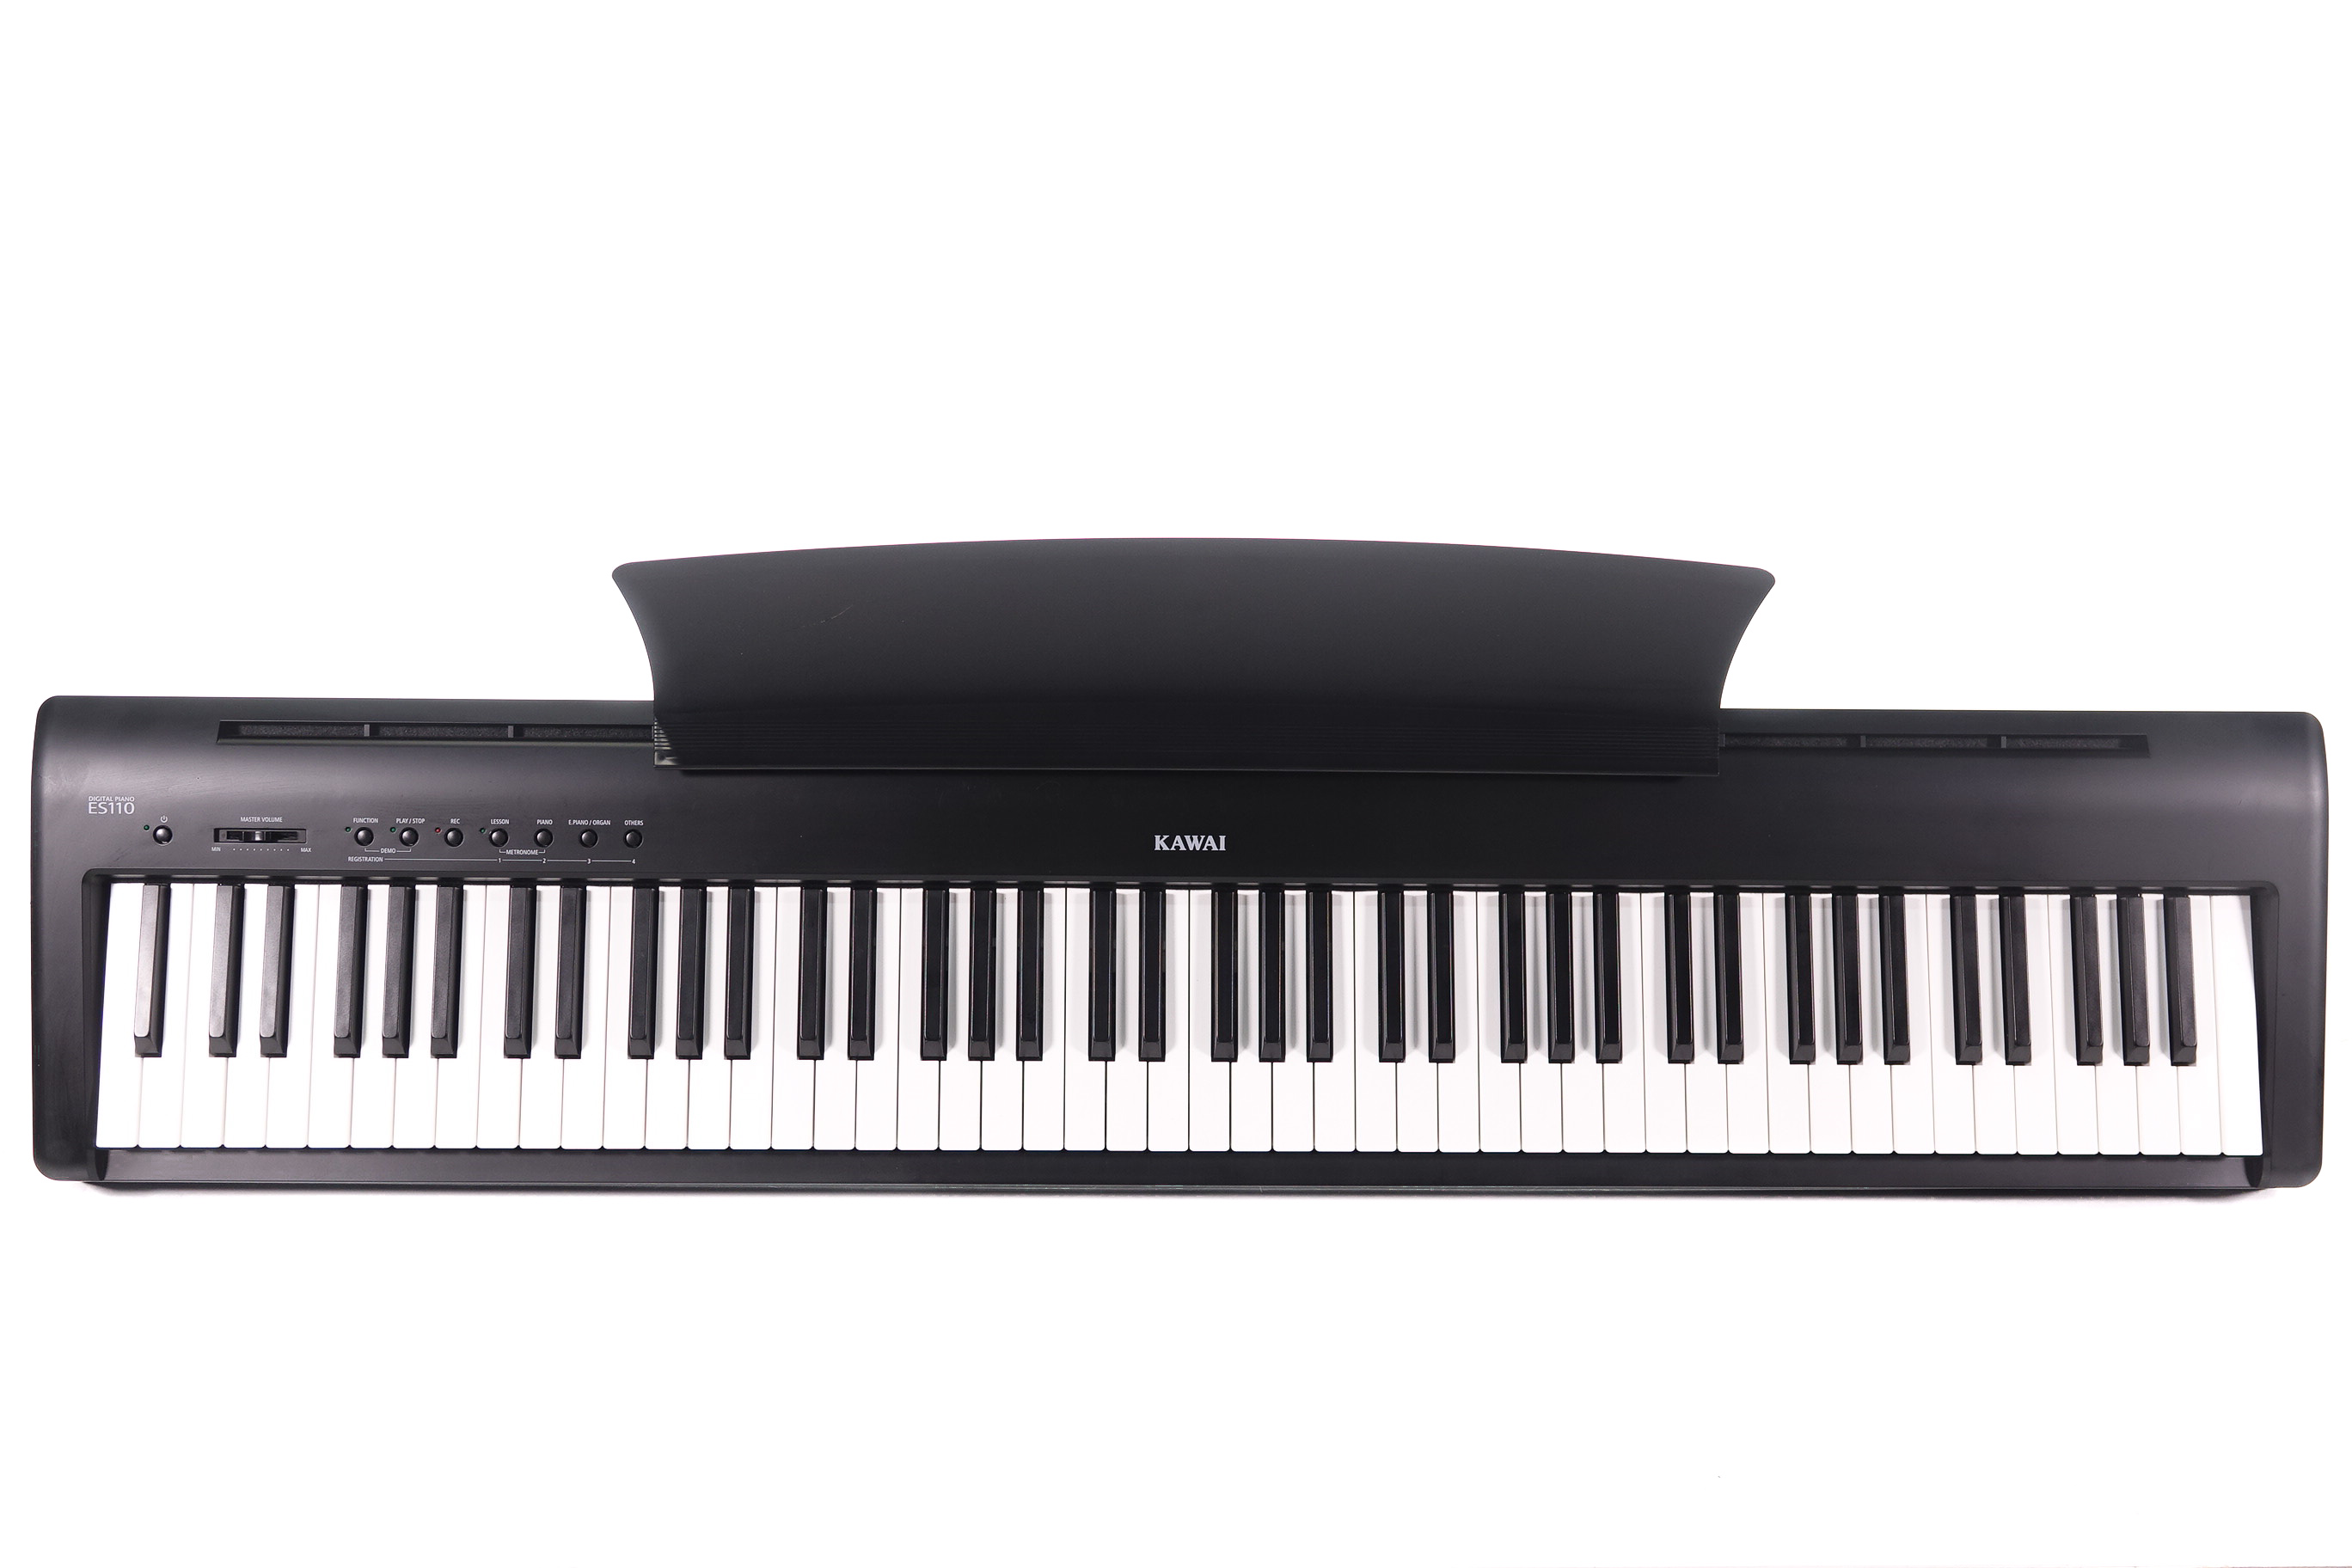 Pre-Loved Kawai Keyboards Rental from $28/month - Musicorp